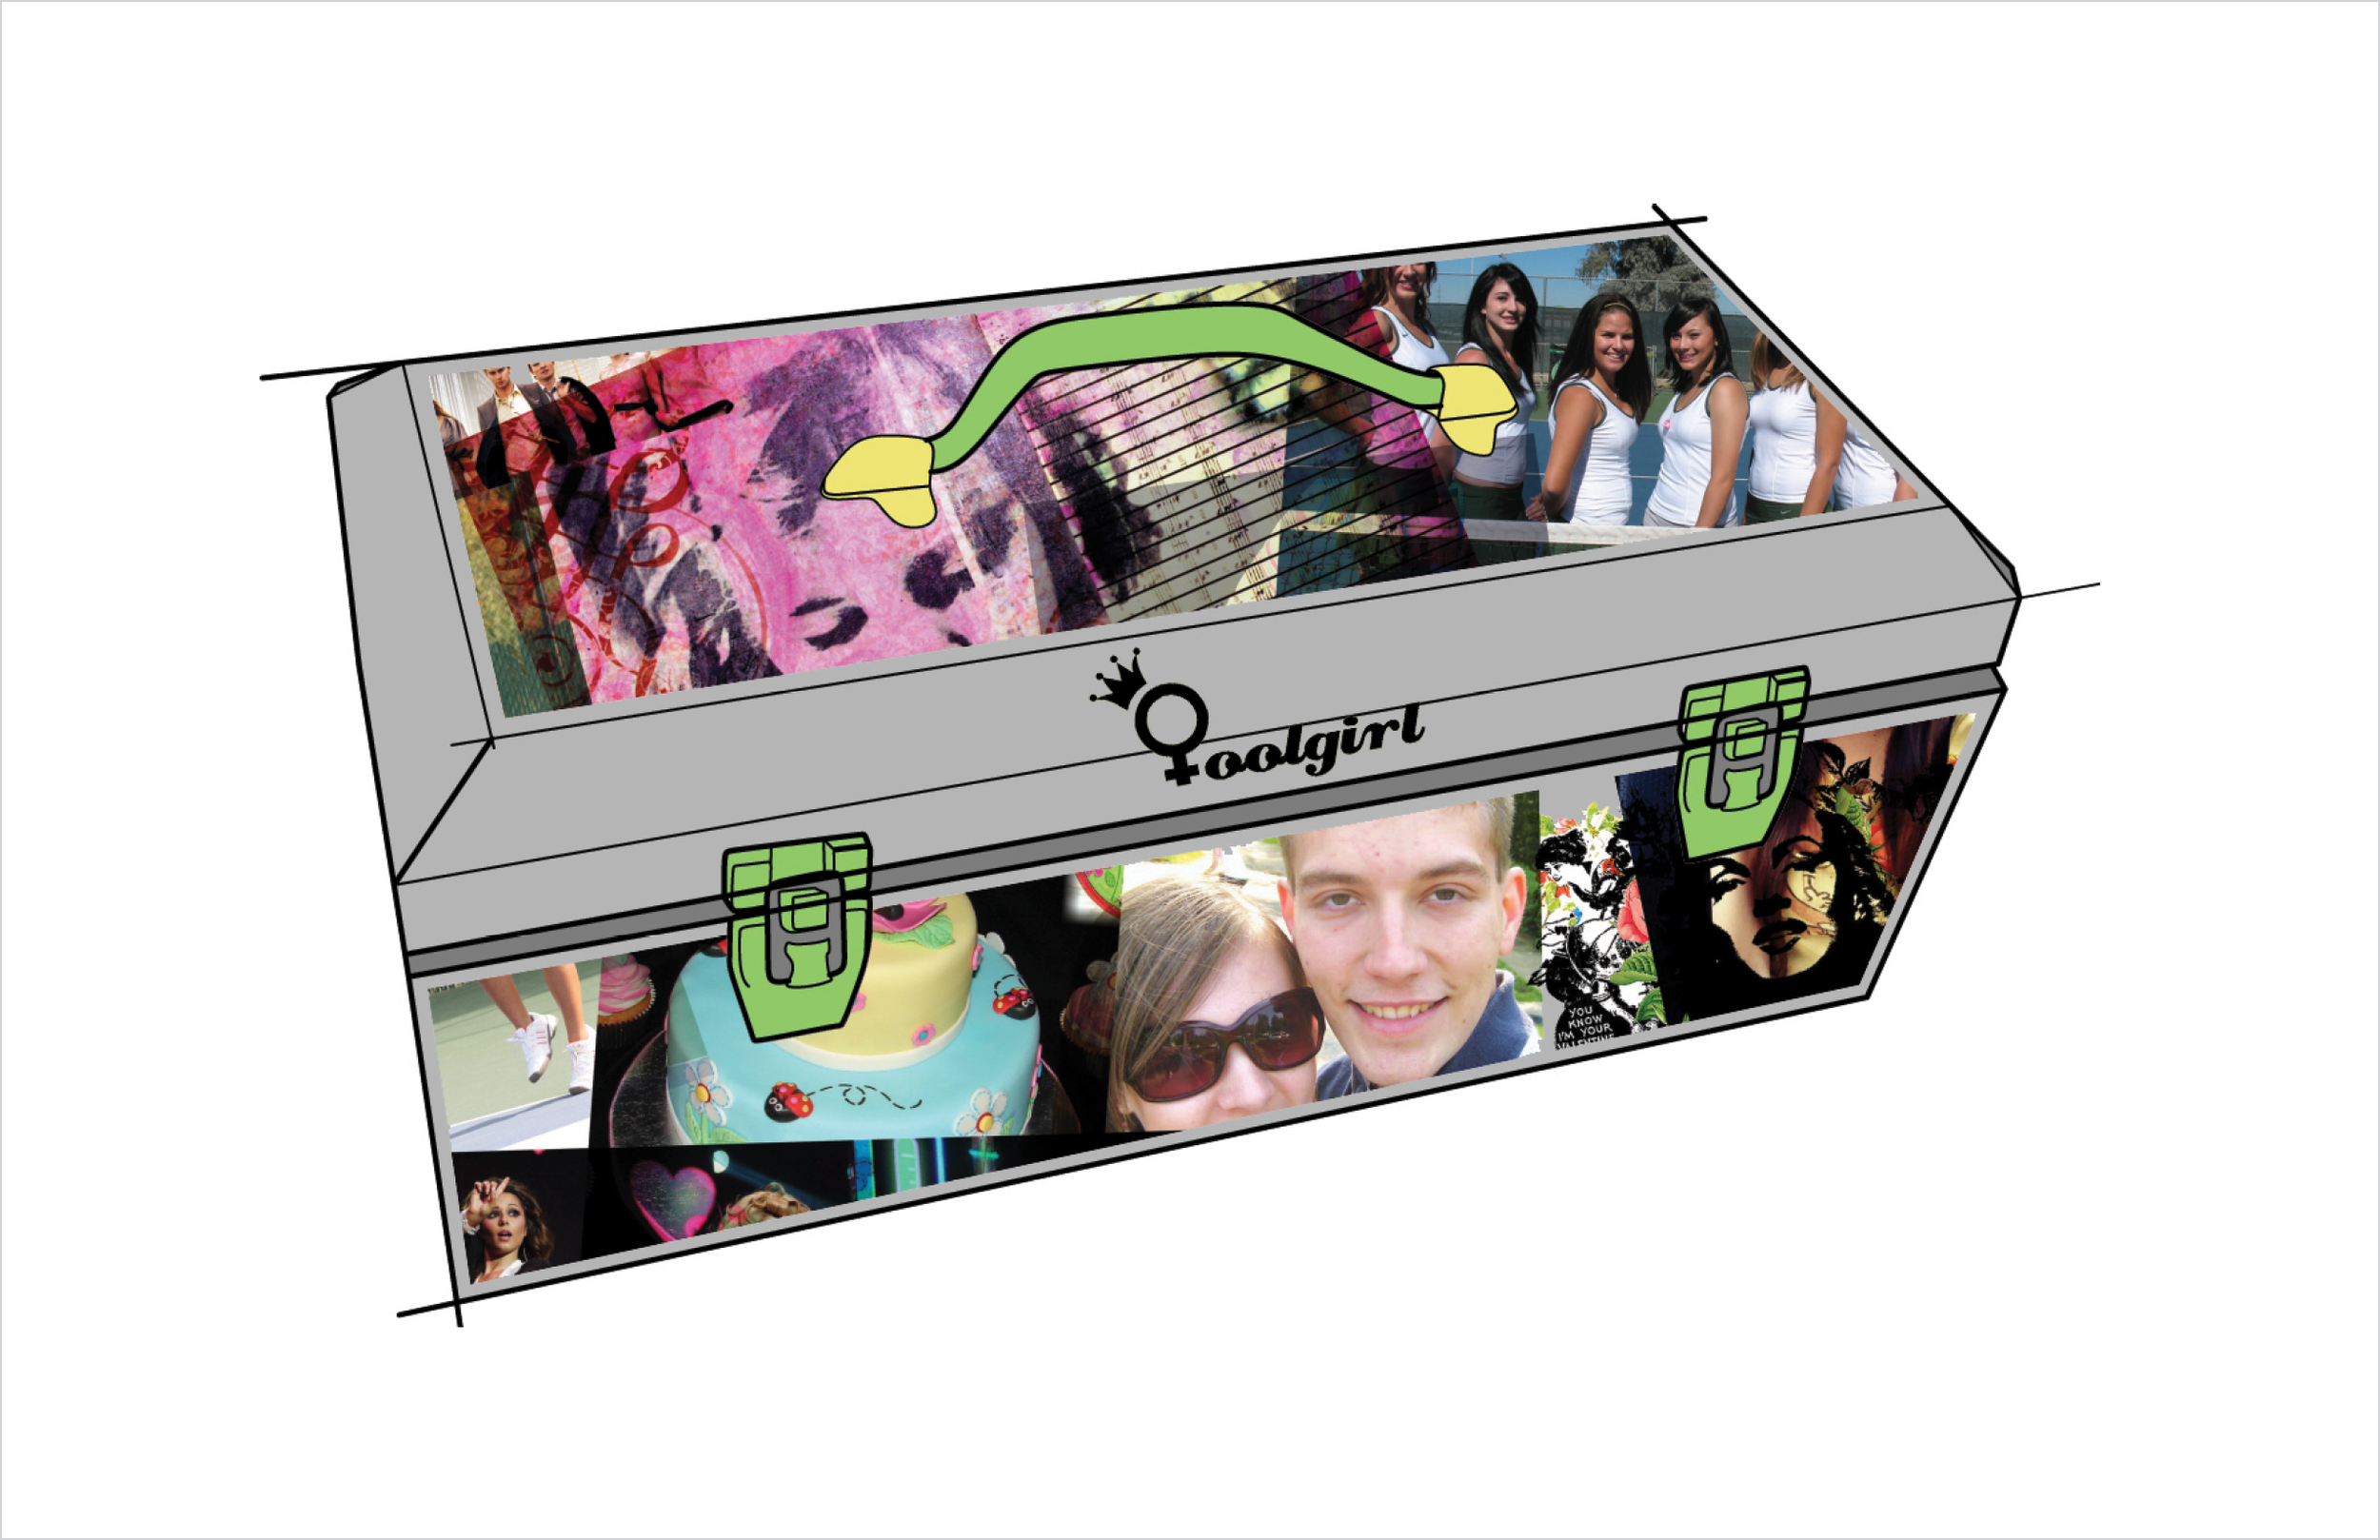 The box is not only a case to organize and keepher tools well, but a place to showcaseherown individuality through pictures of her artwork, friends, boyfriends but also be a canvas to celebrateher completed projects.